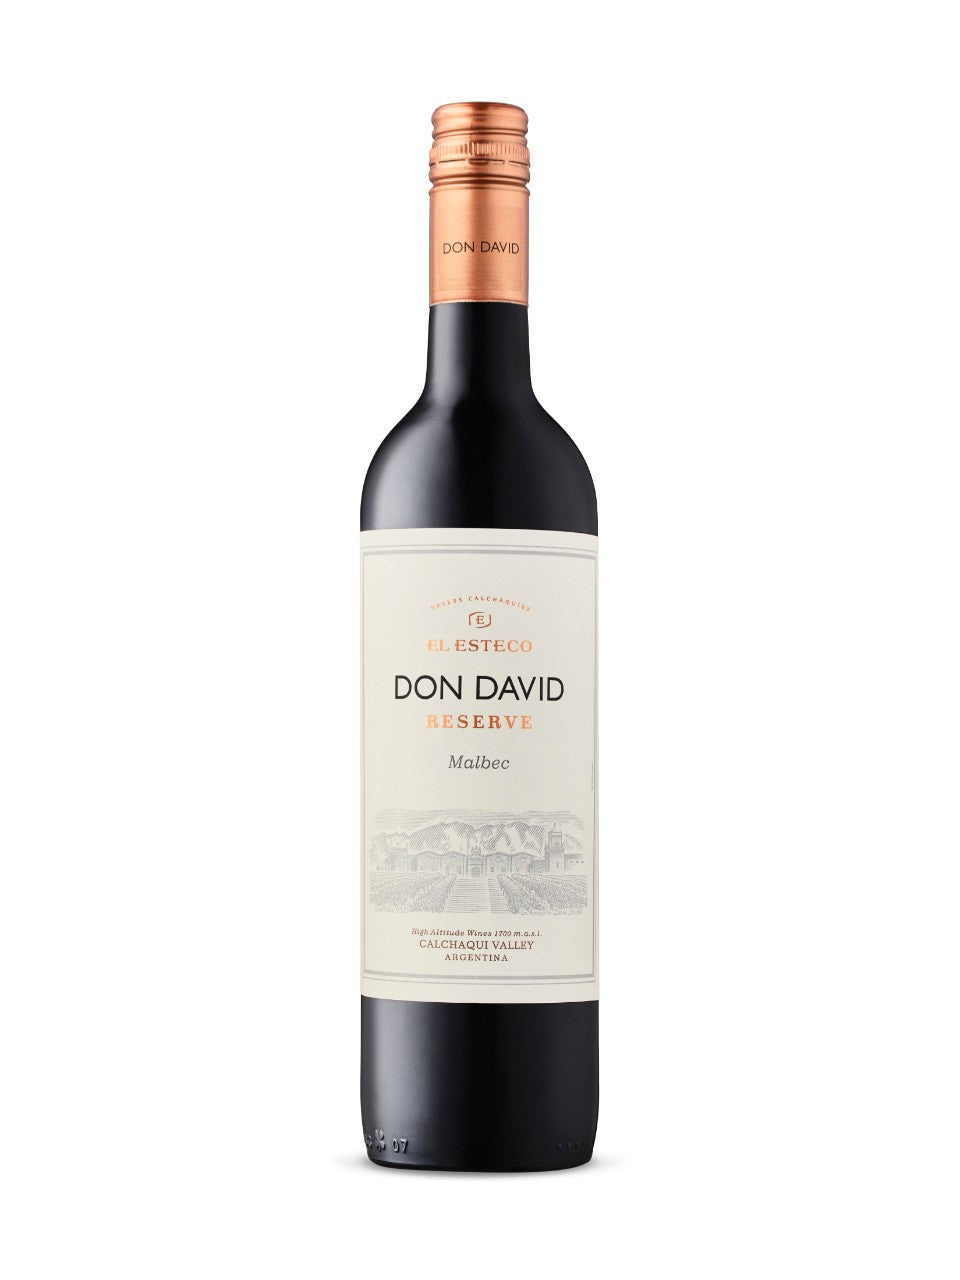 Don David Reserve Malbec 750mL